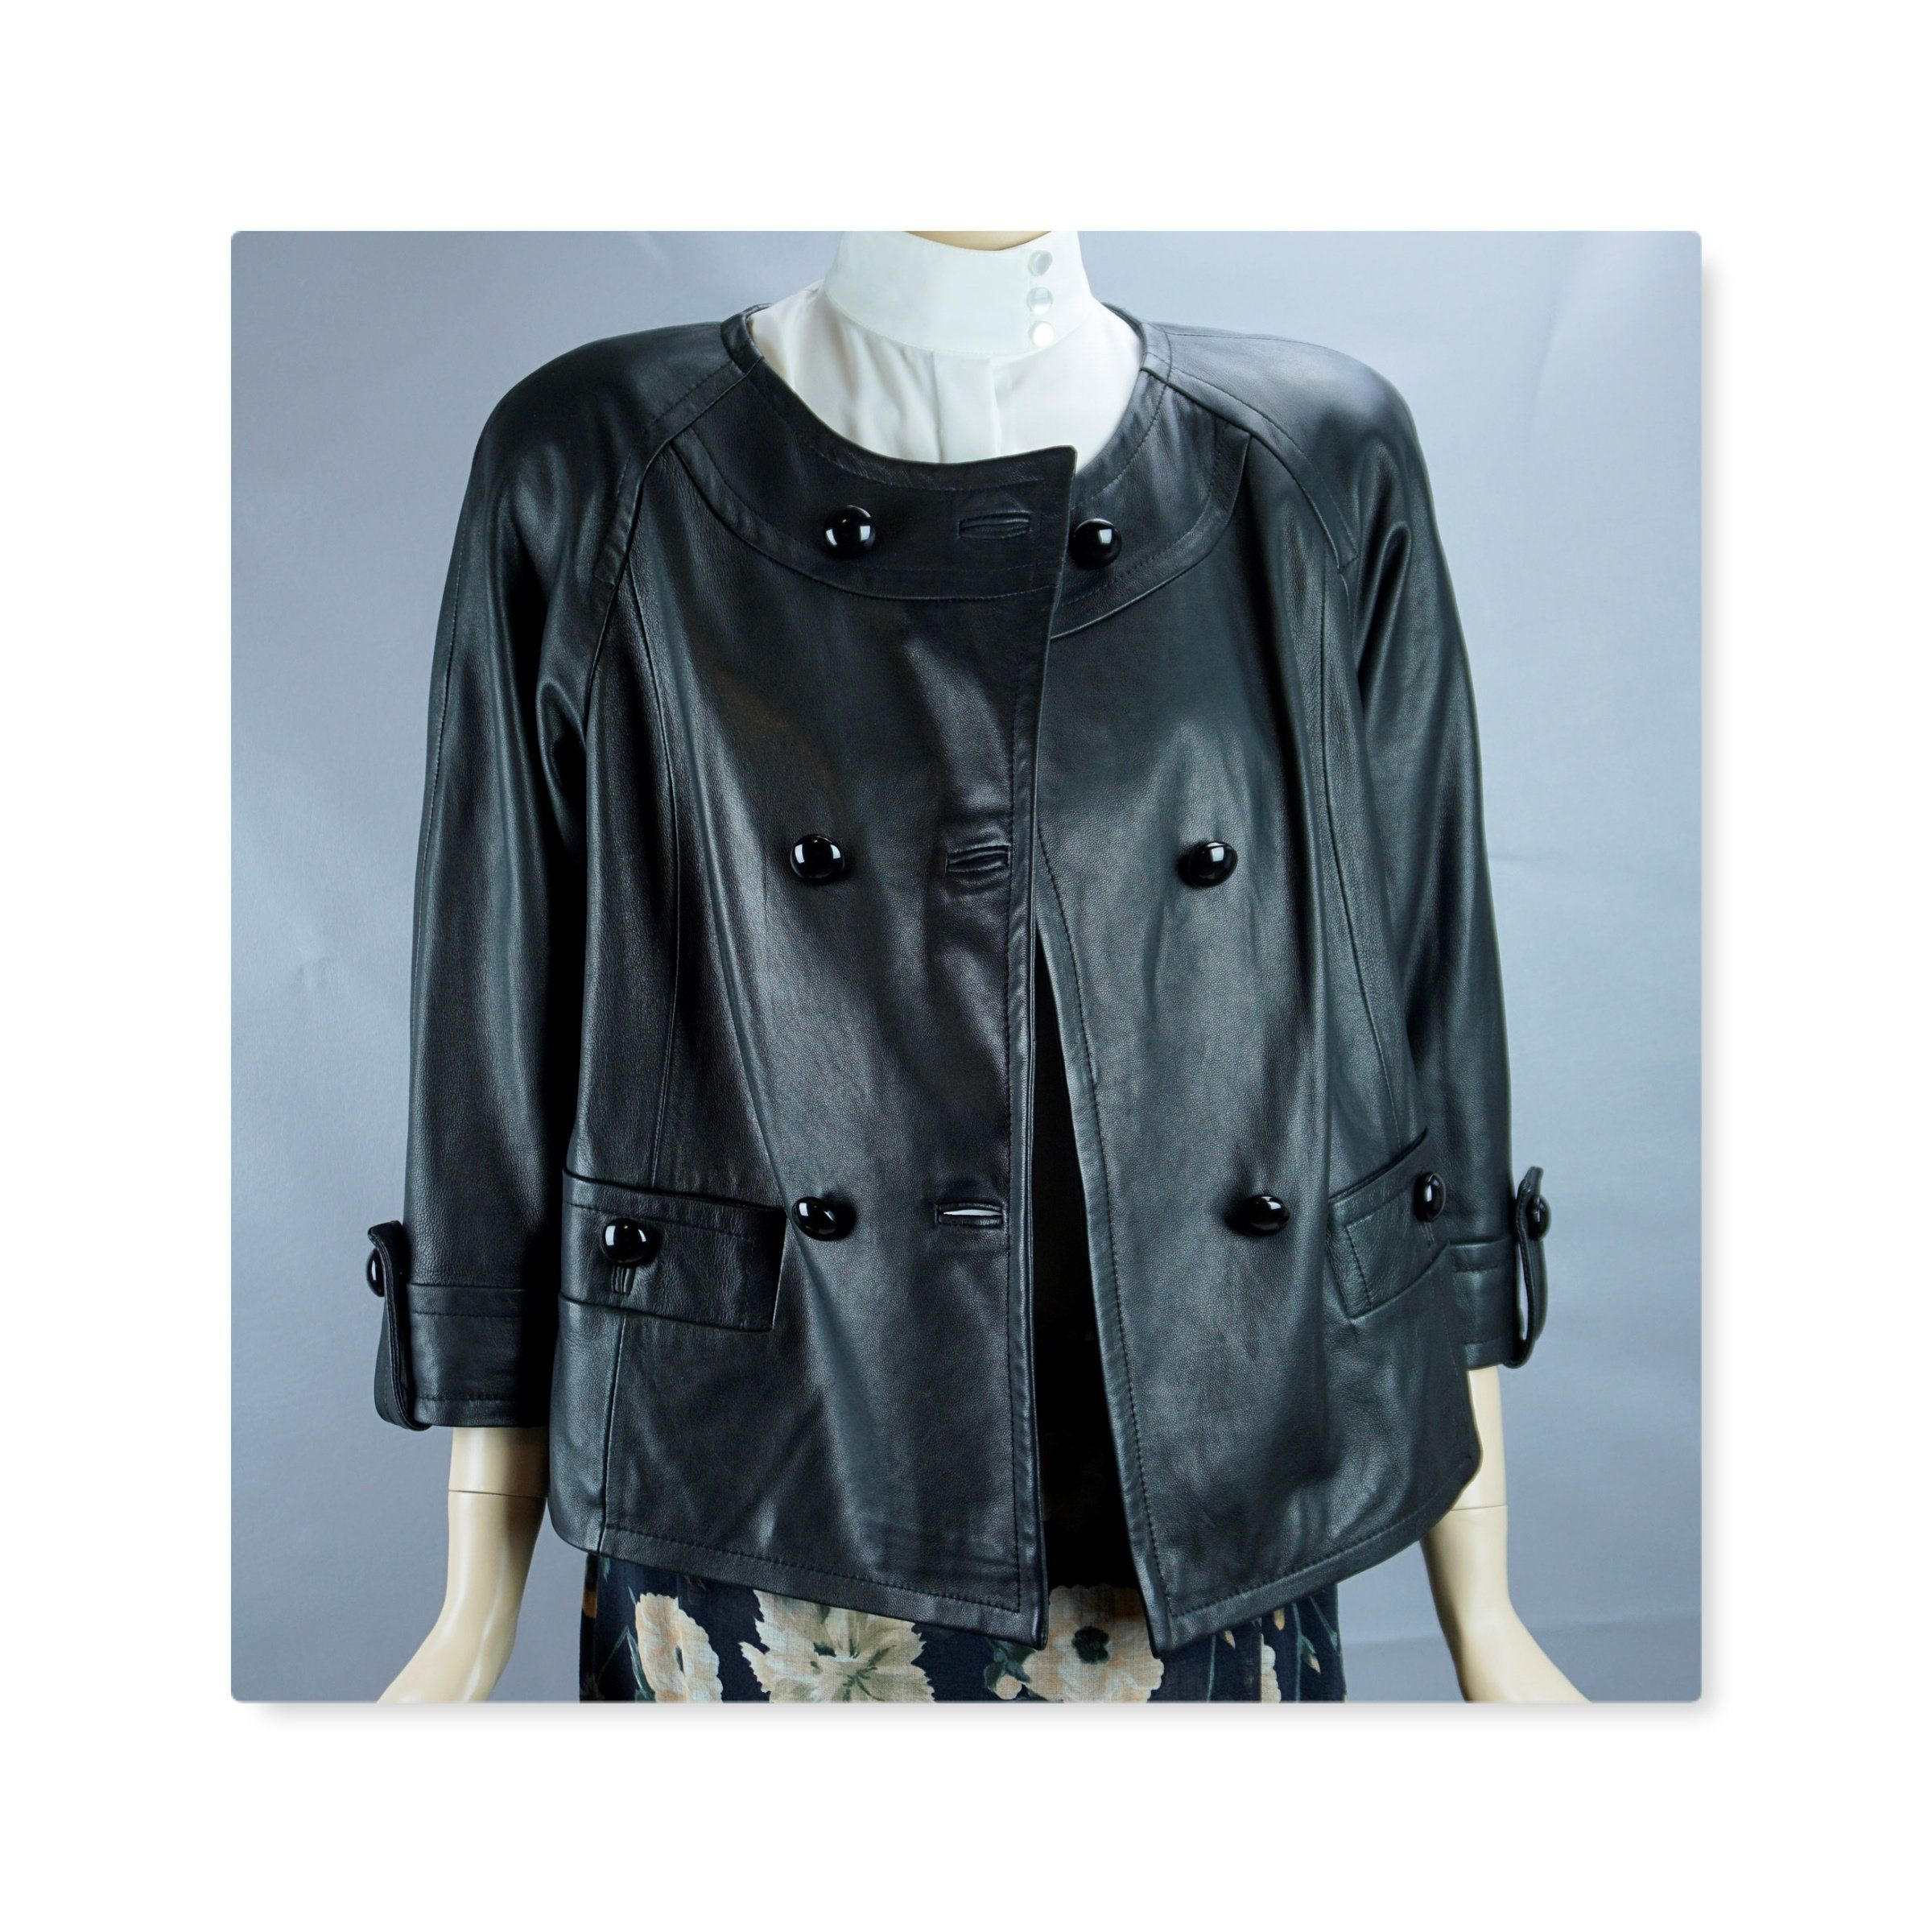 Black Leather Jacket Double Breasted Leather Jacket Talbots Etsy Black Leather Jacket Jackets Black Leather [ 2400 x 2400 Pixel ]